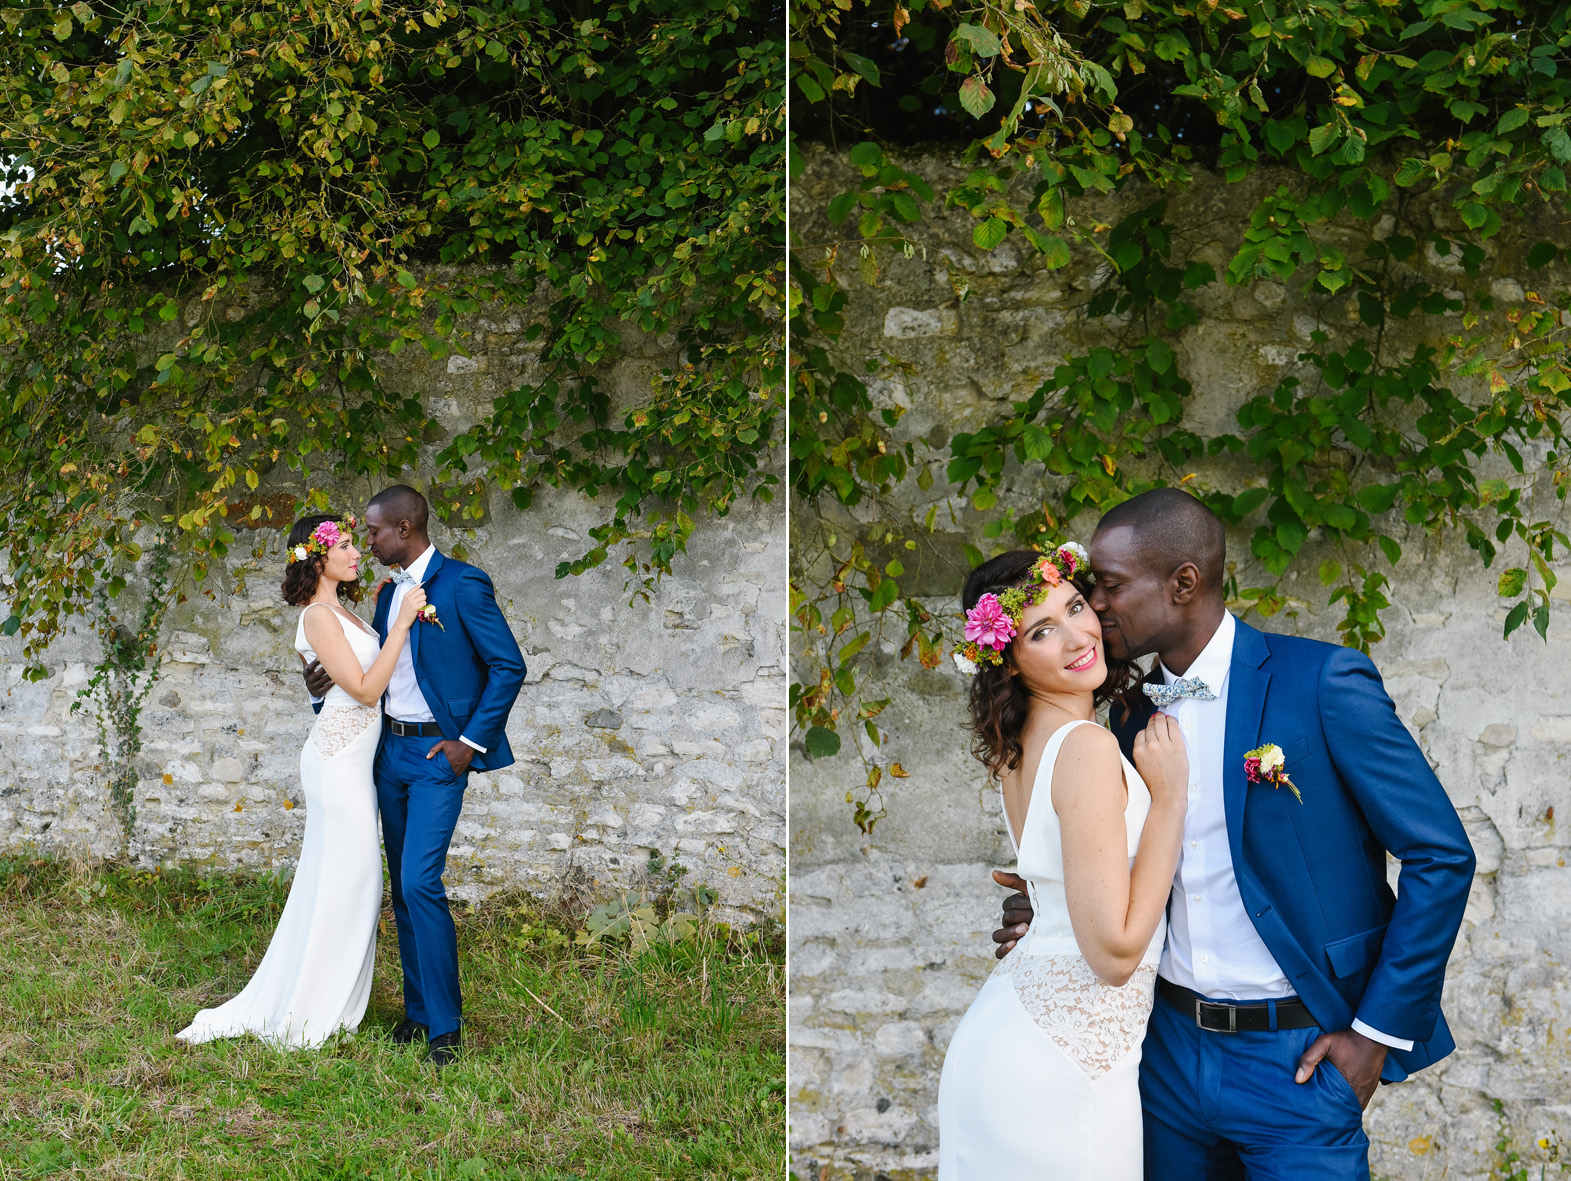 shooting_inspiration_mariage_peps_wedding_95_photographe_clemence_dubois-mep14